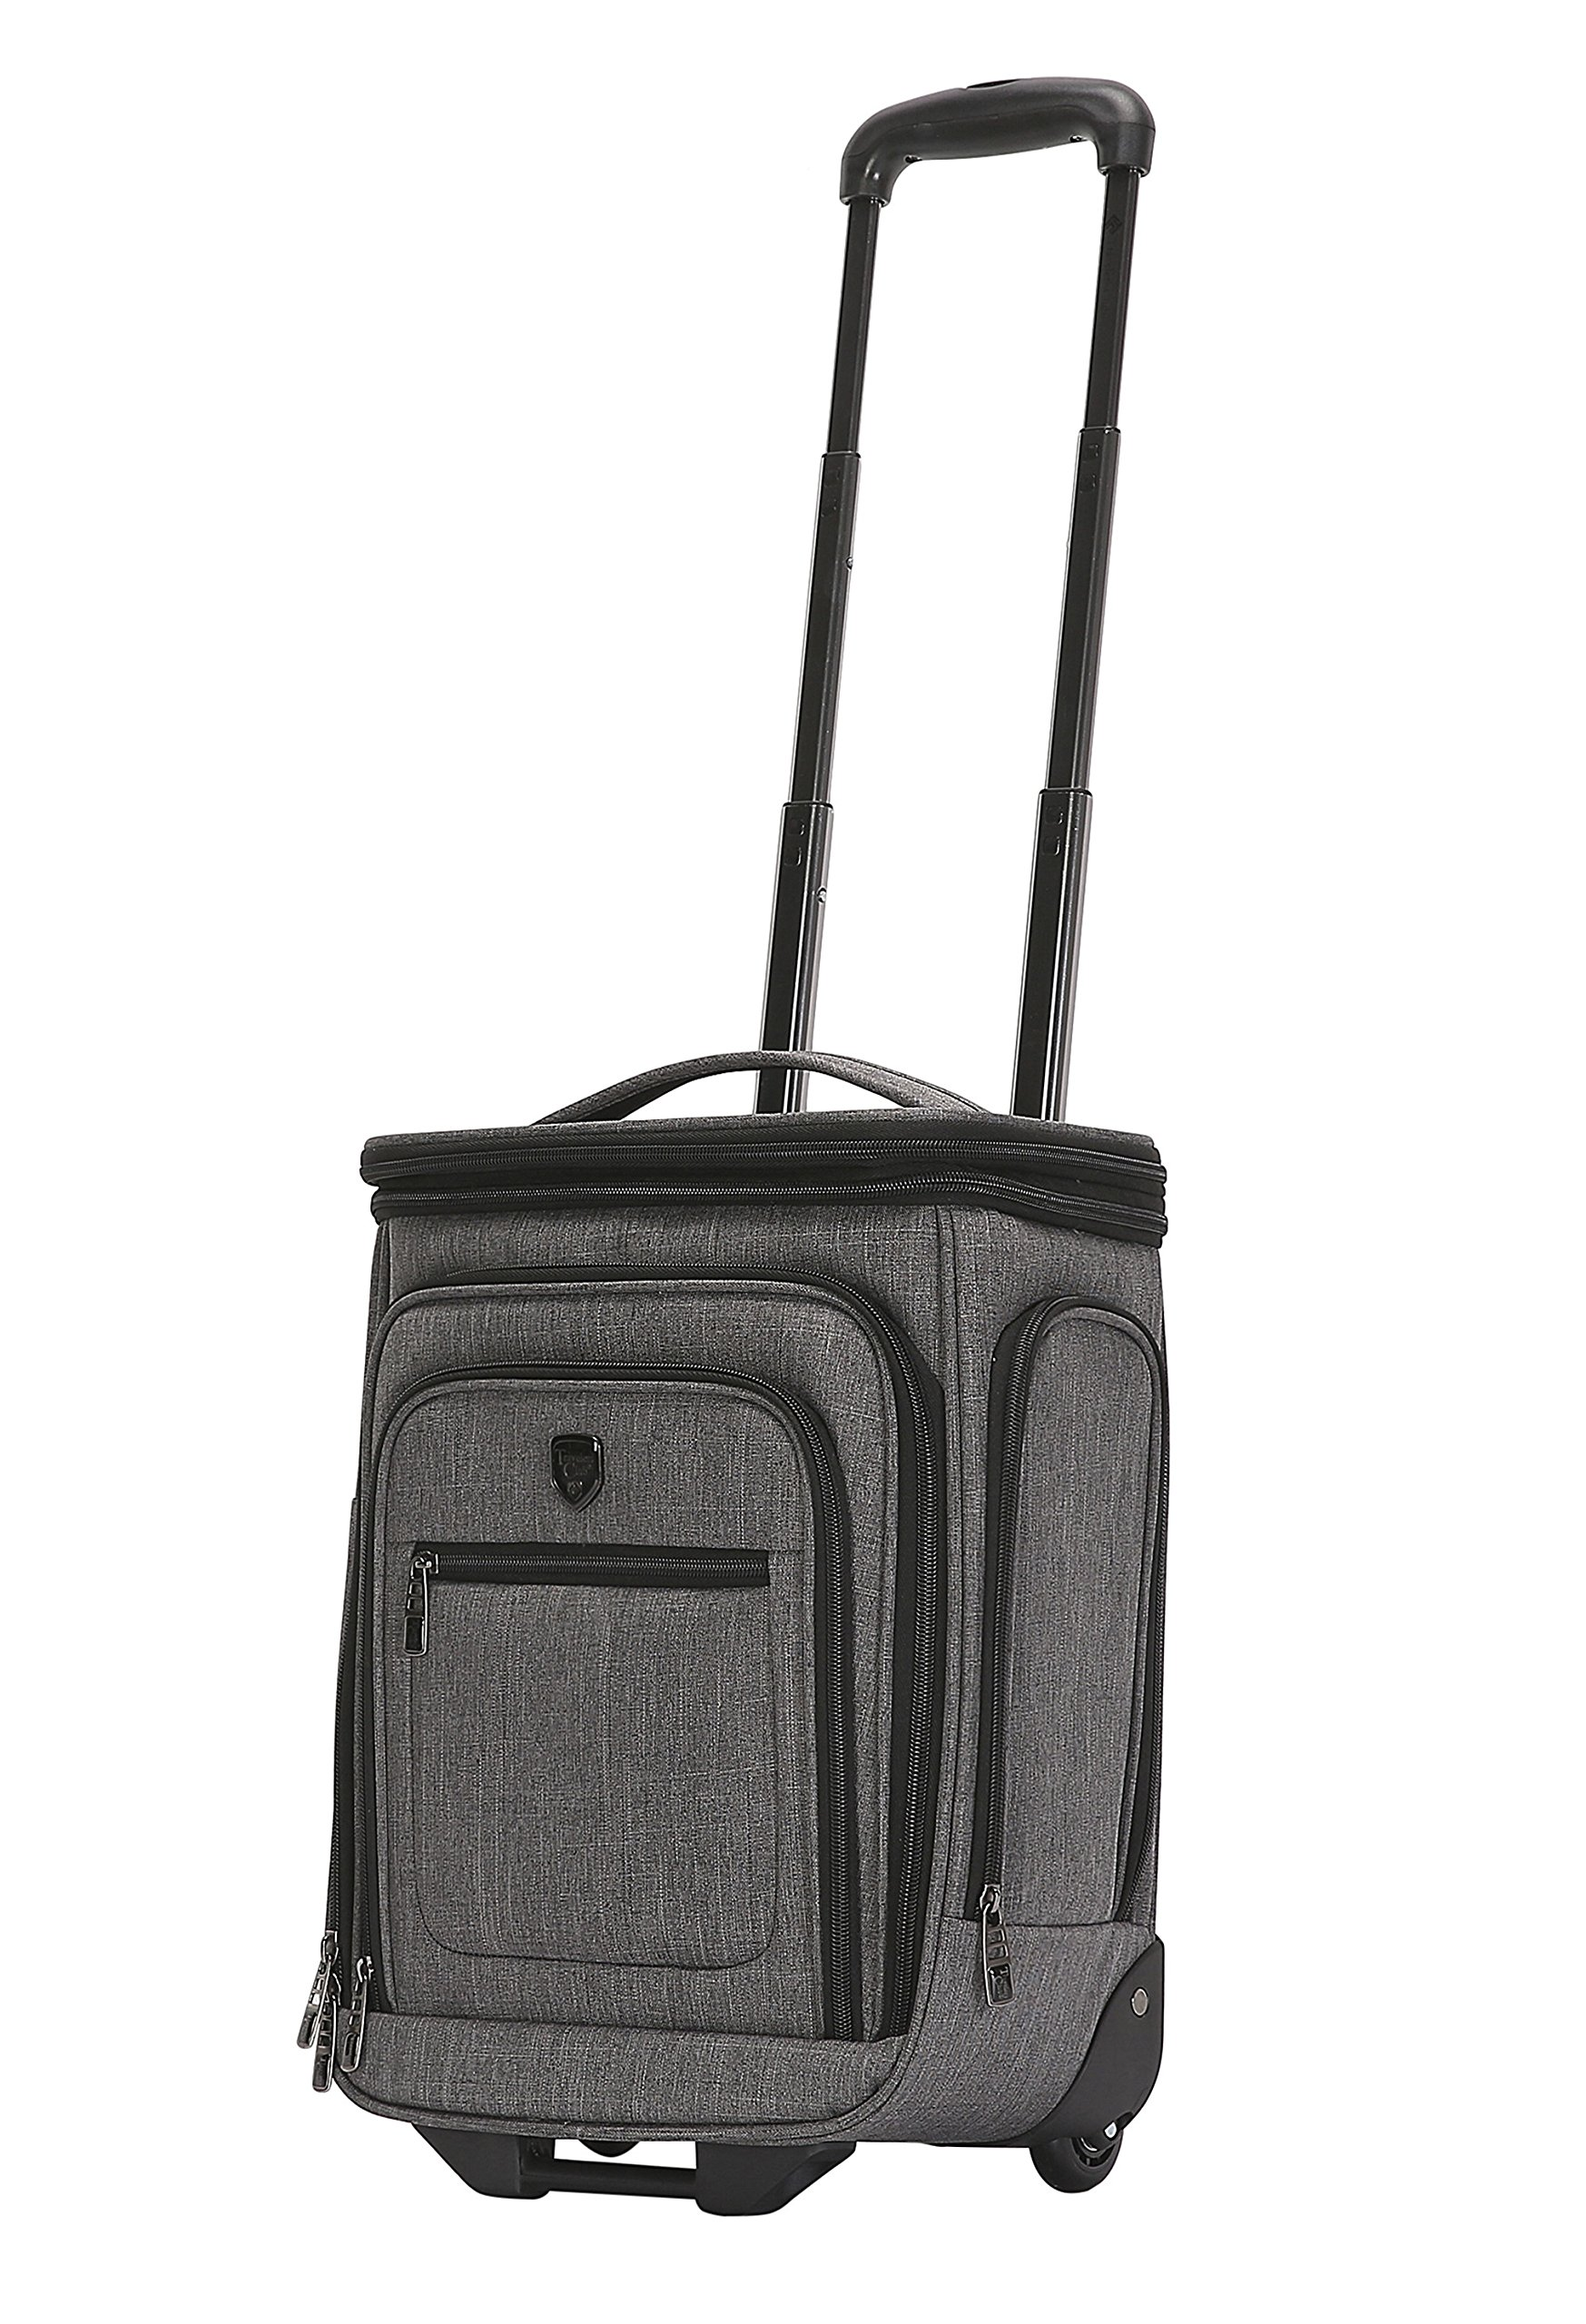 Travelers Club Luggage 17'' Top Expandable Underseater W/Side USB Port Connector, Dark Gray Suitcase, Carry